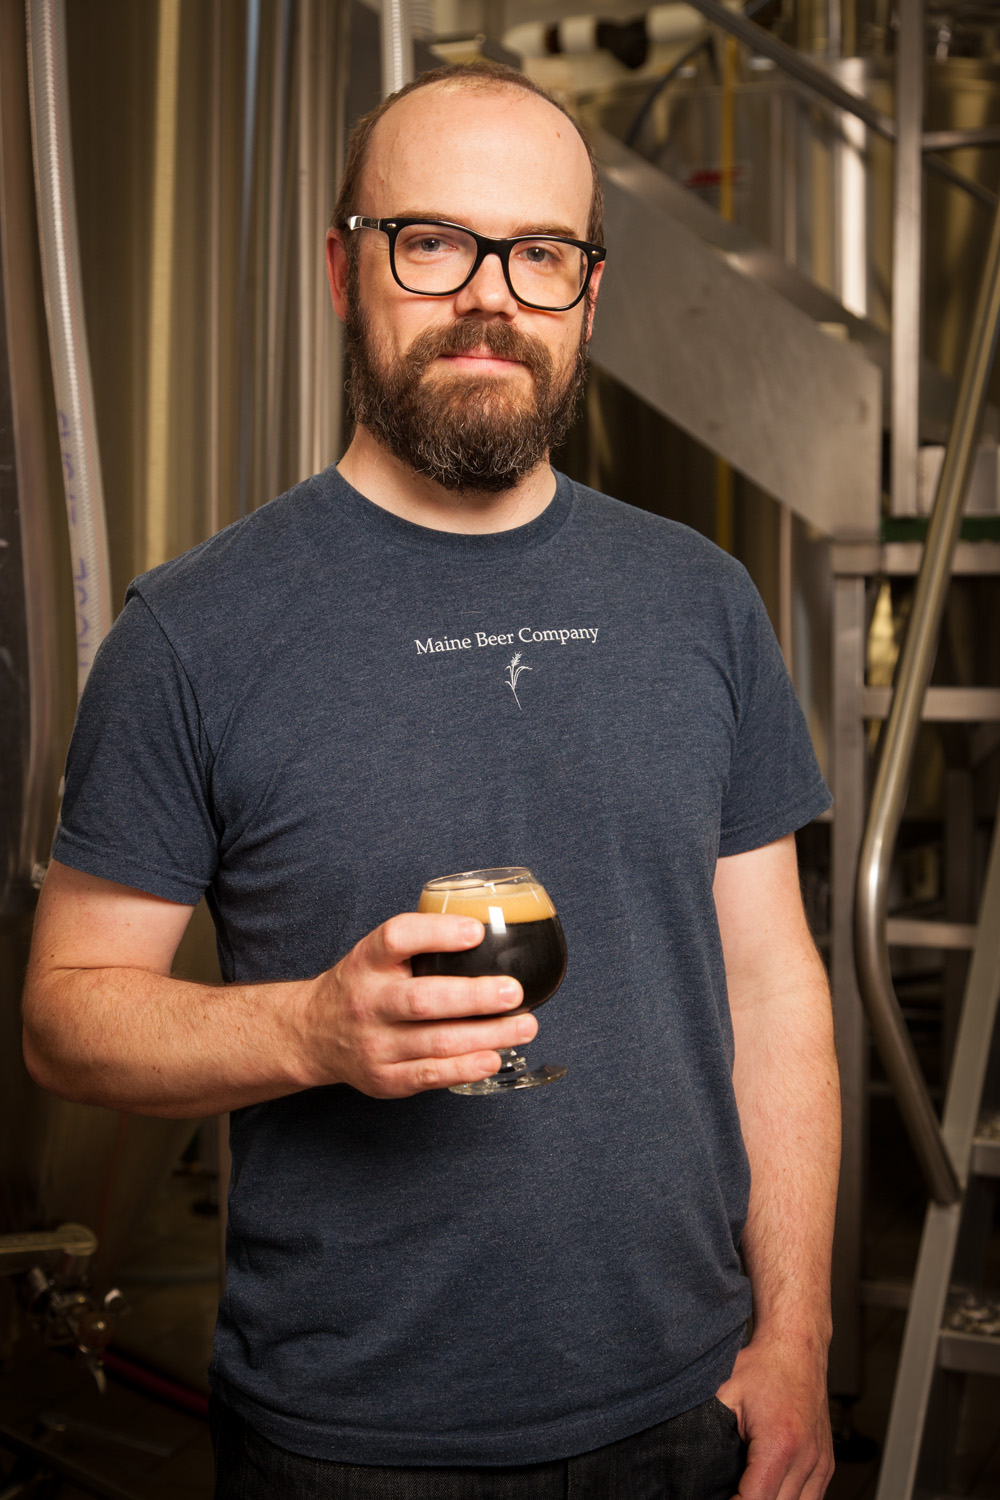 Mark Fulton, Director of Brewery Operations Maine Beer Co. Freeport, ME Established in 2000